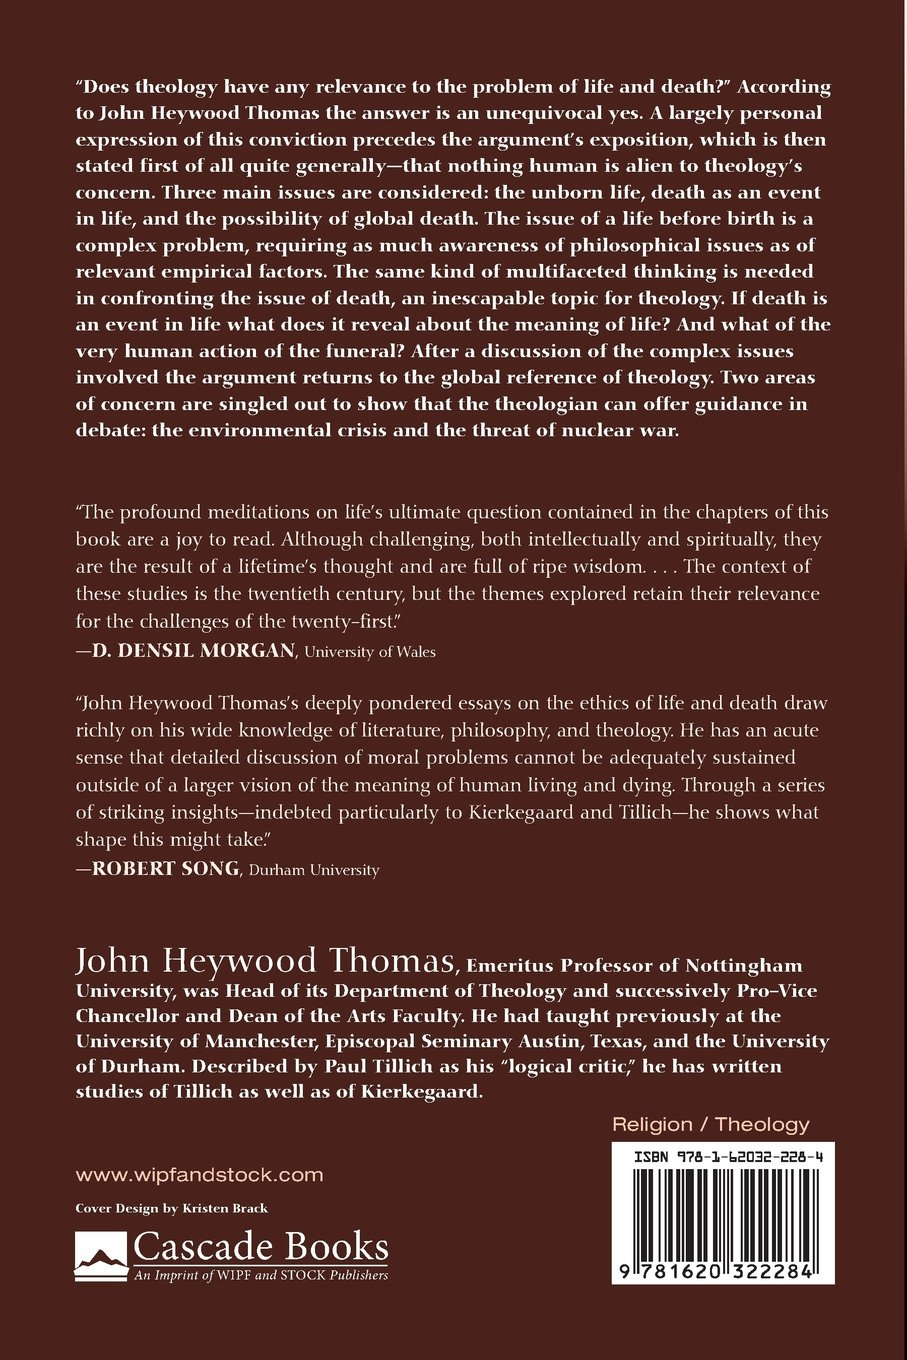 theology and issues of life and death john heywood thomas theology and issues of life and death john heywood thomas 9781620322284 com books